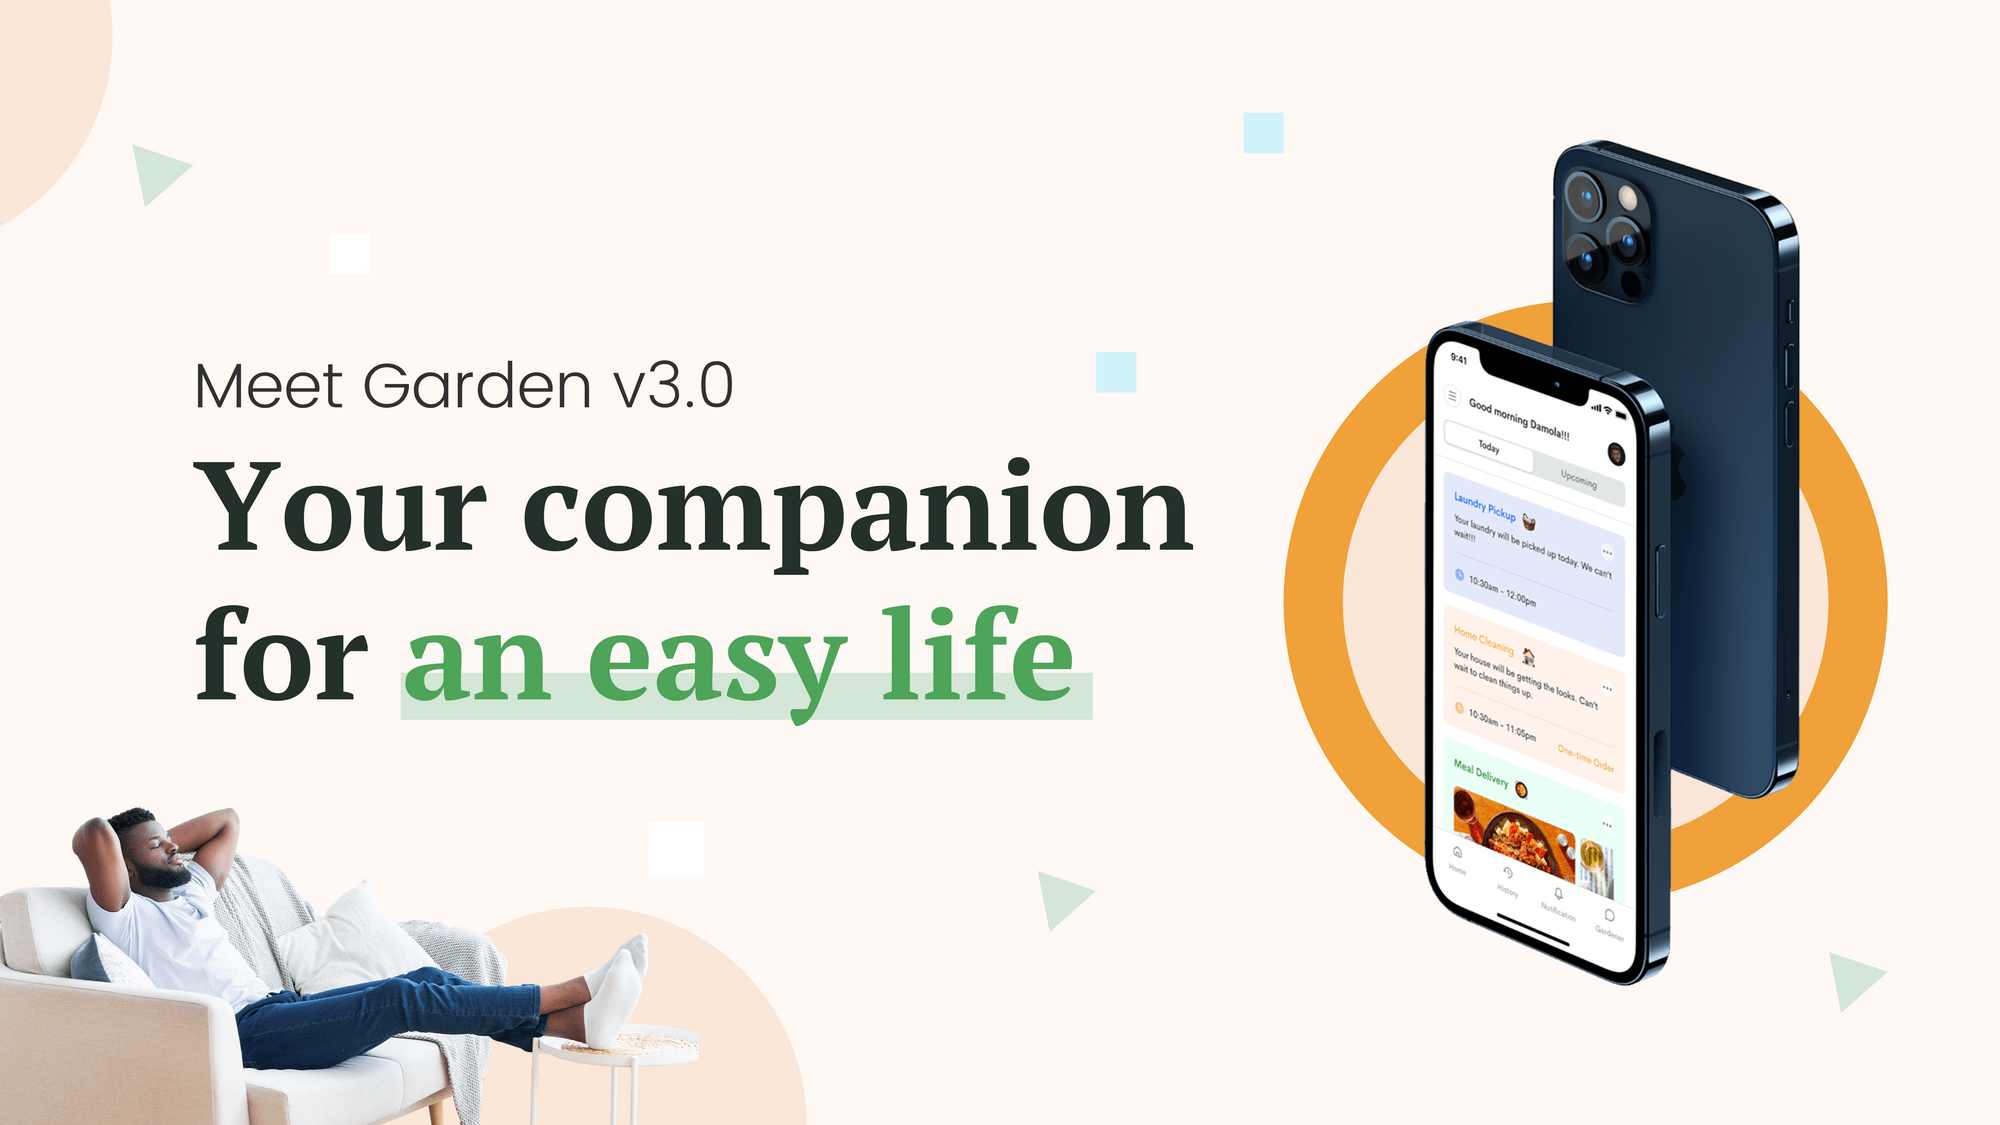 Garden v3.0: The Latest Iteration of an Easy Life